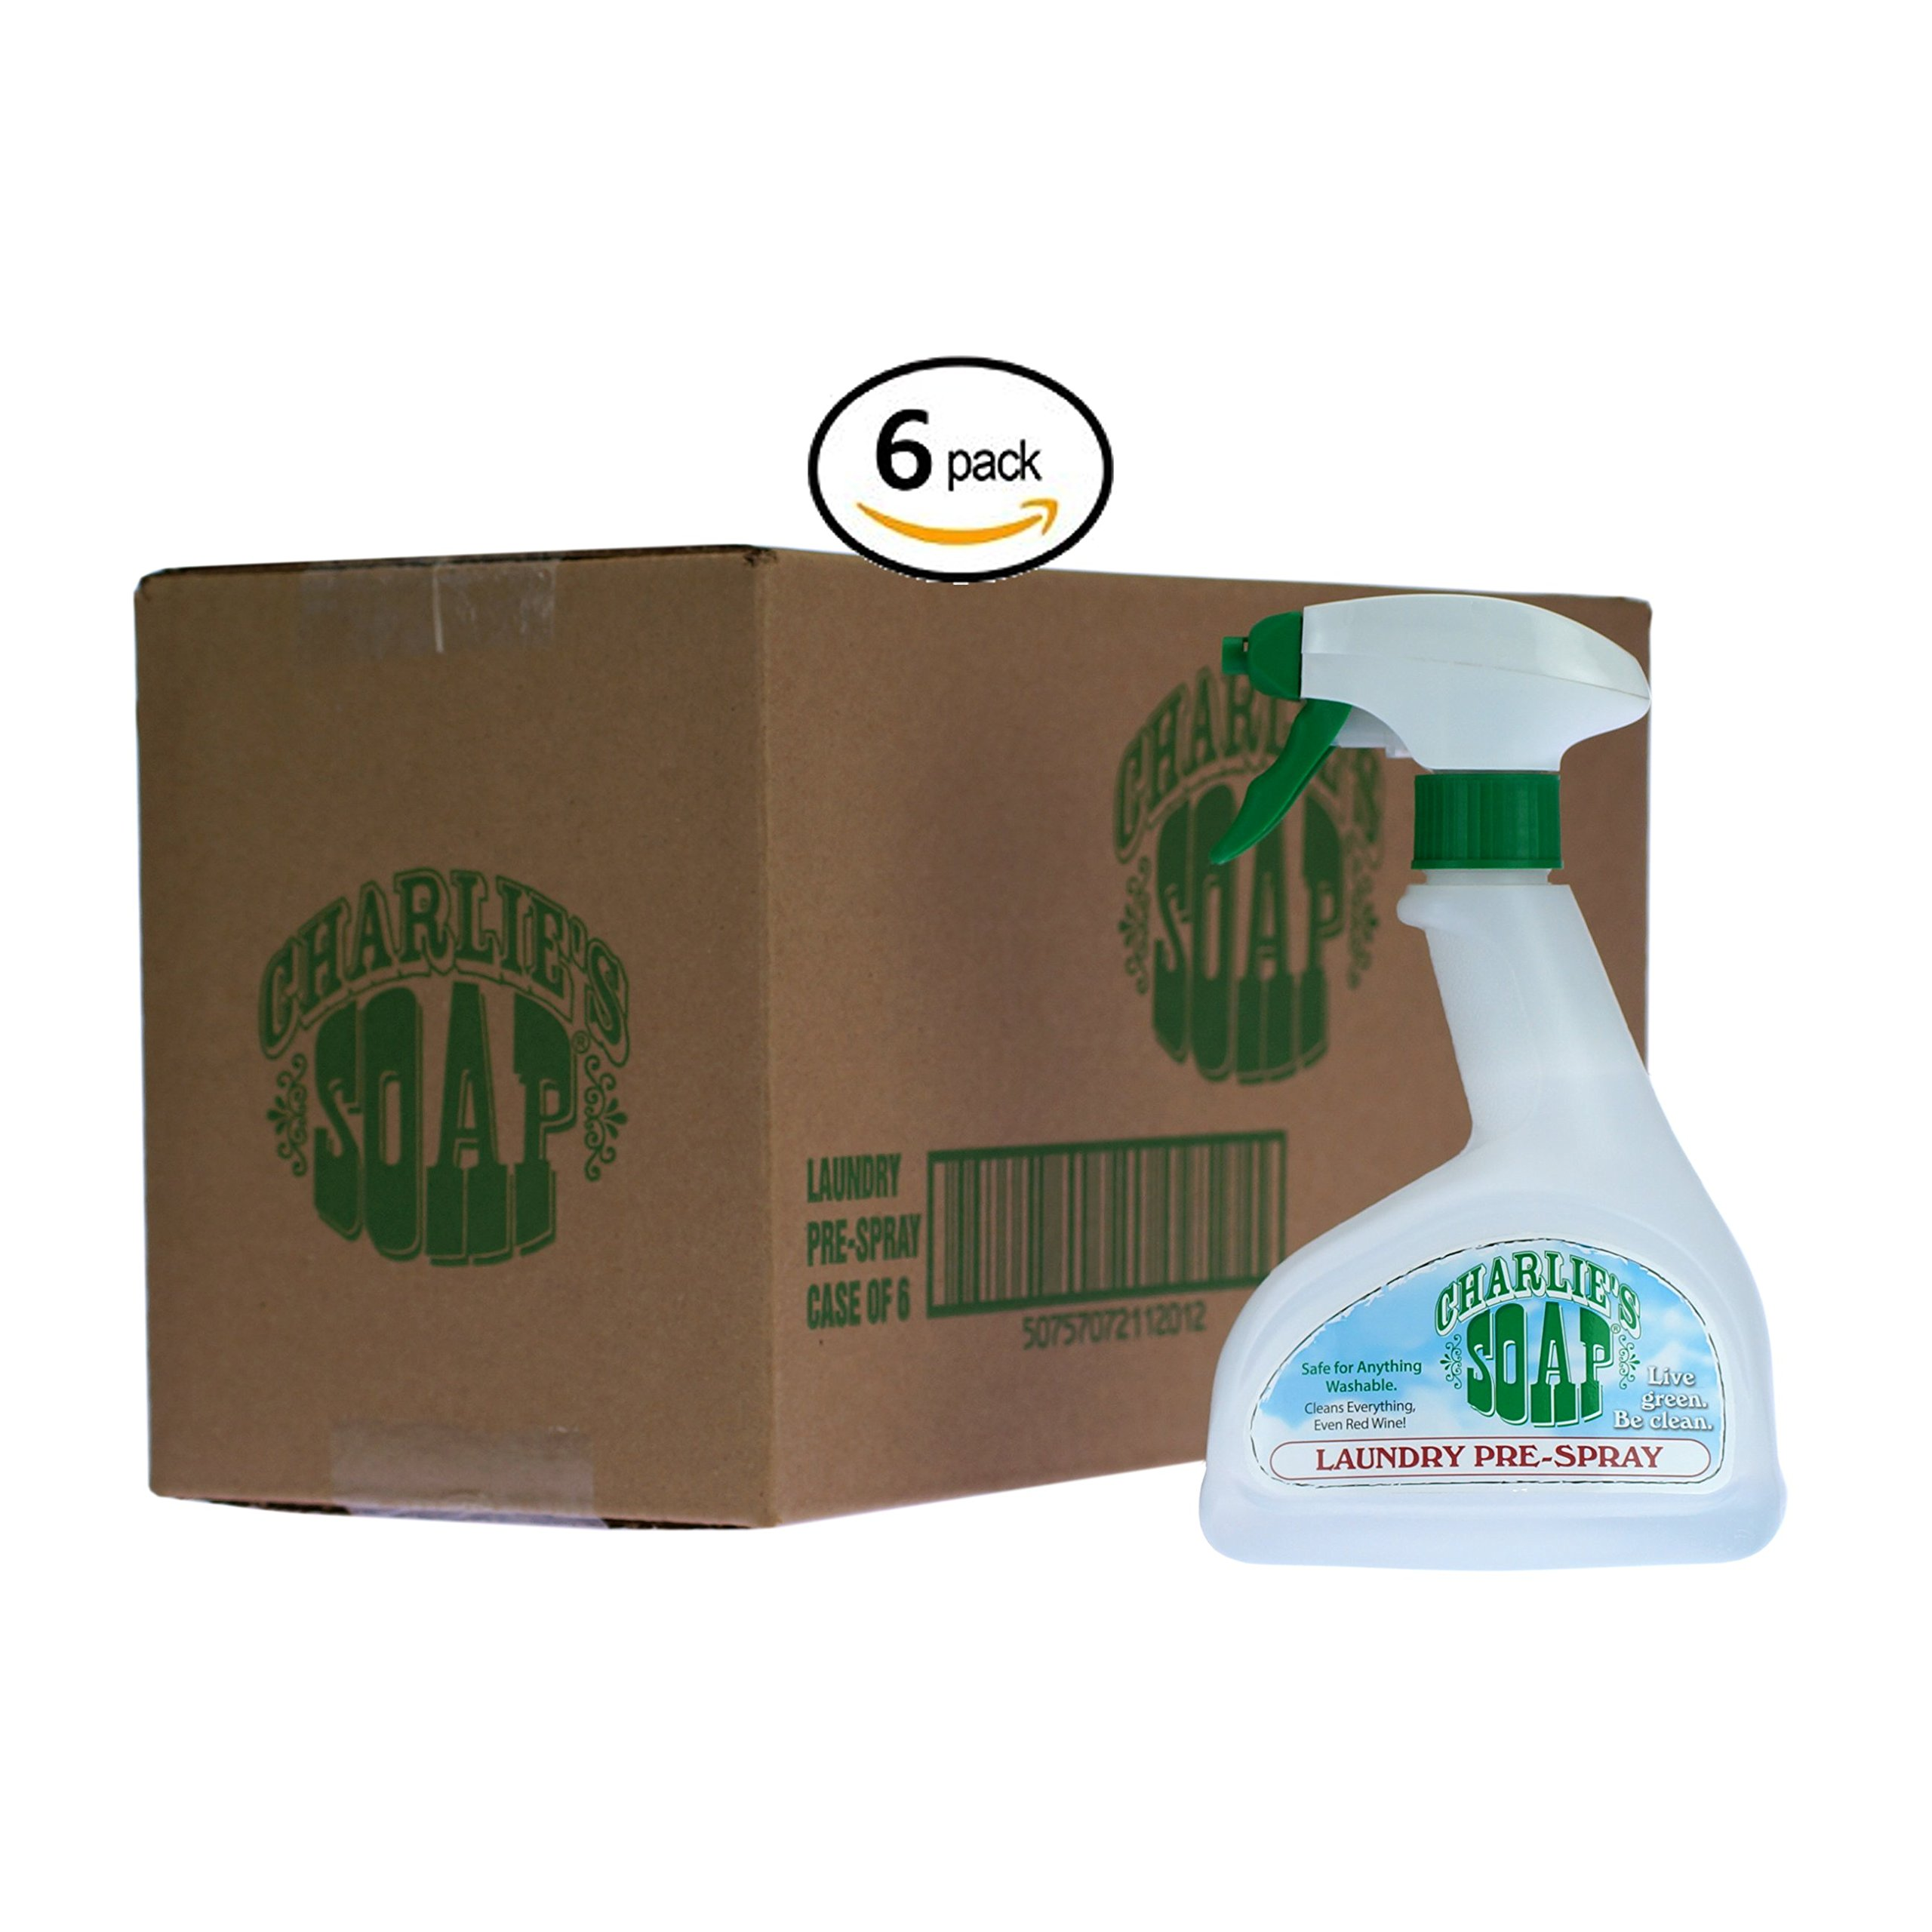 Charlie's Soap - Laundry Pre-Spray - Biodegradable Laundry Stain Treater (16.9 oz, 6 Pack)